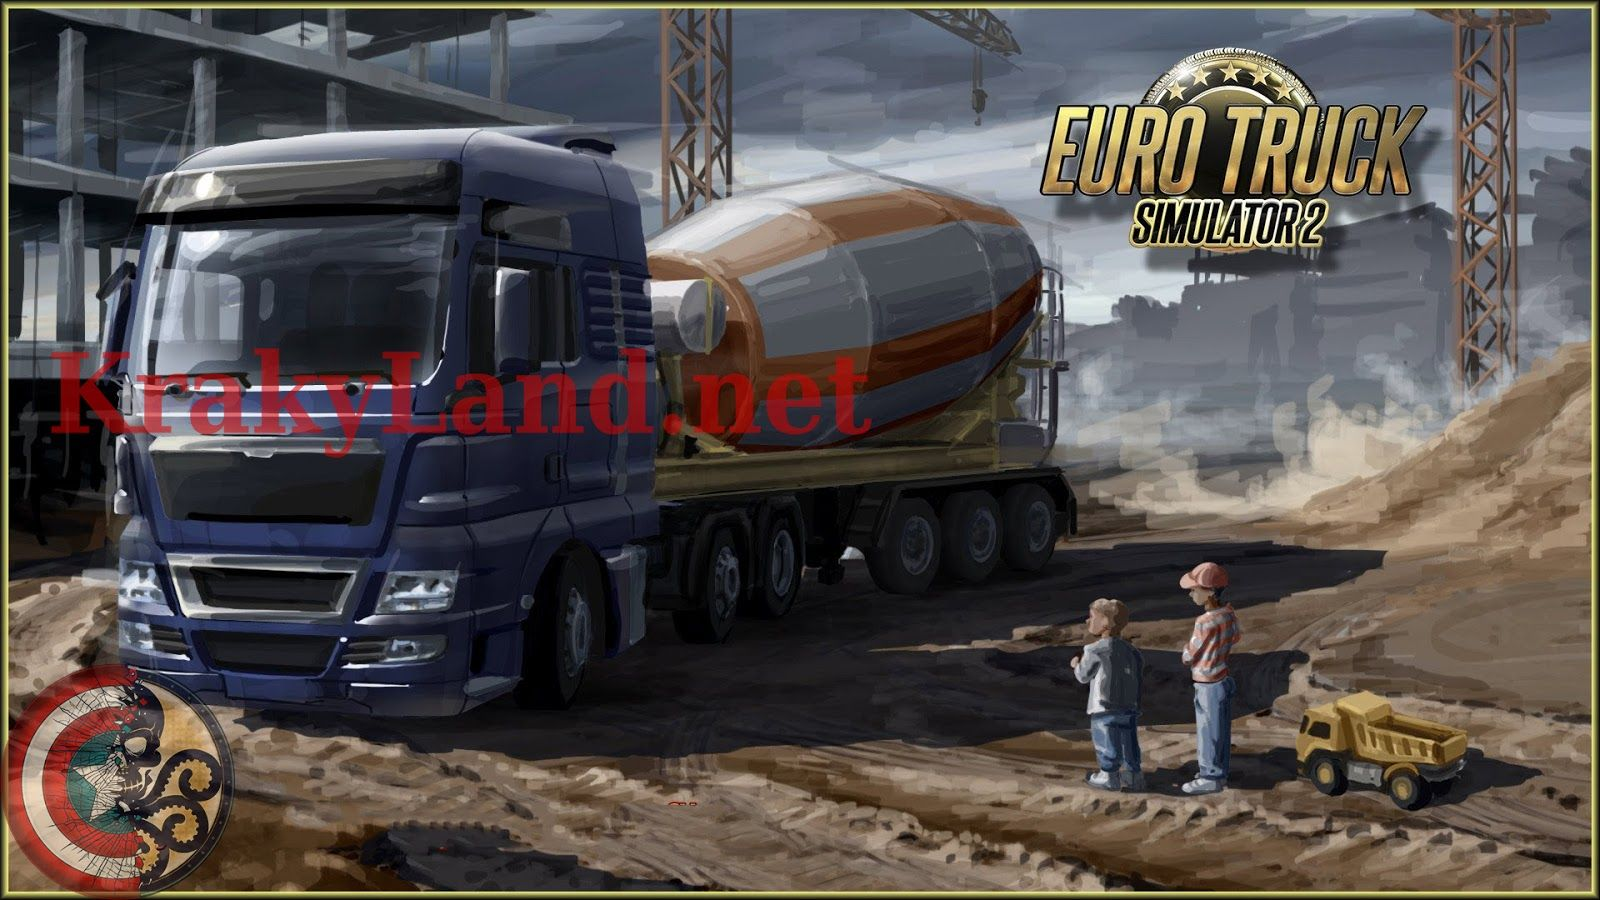 Euro truck simulator 2 download beta